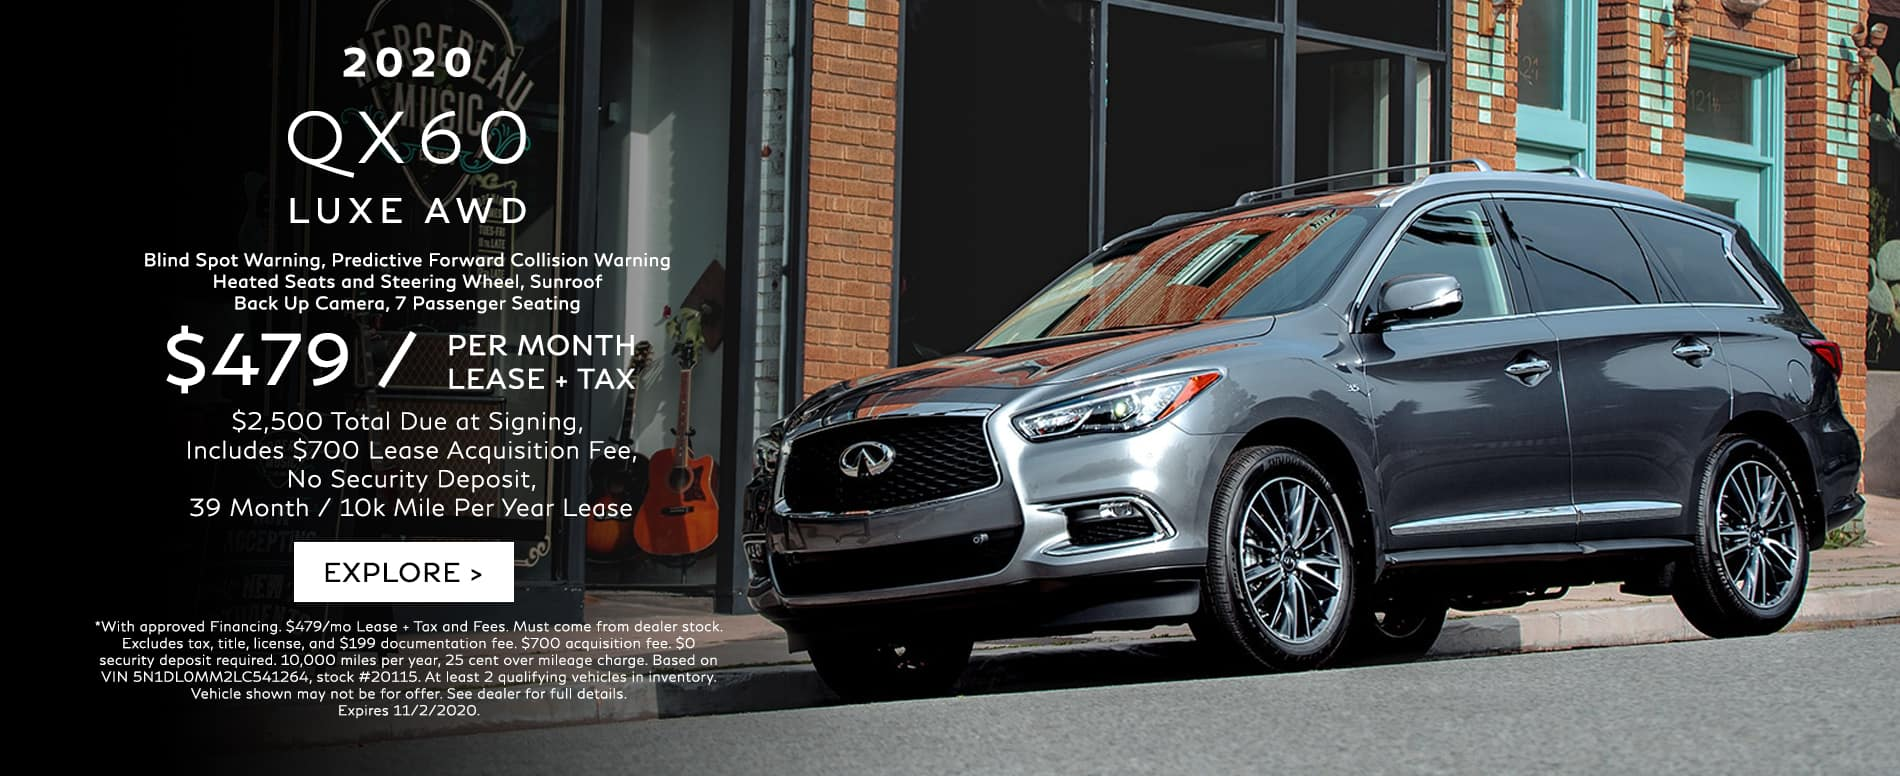 Lease a QX60 for $479/mo